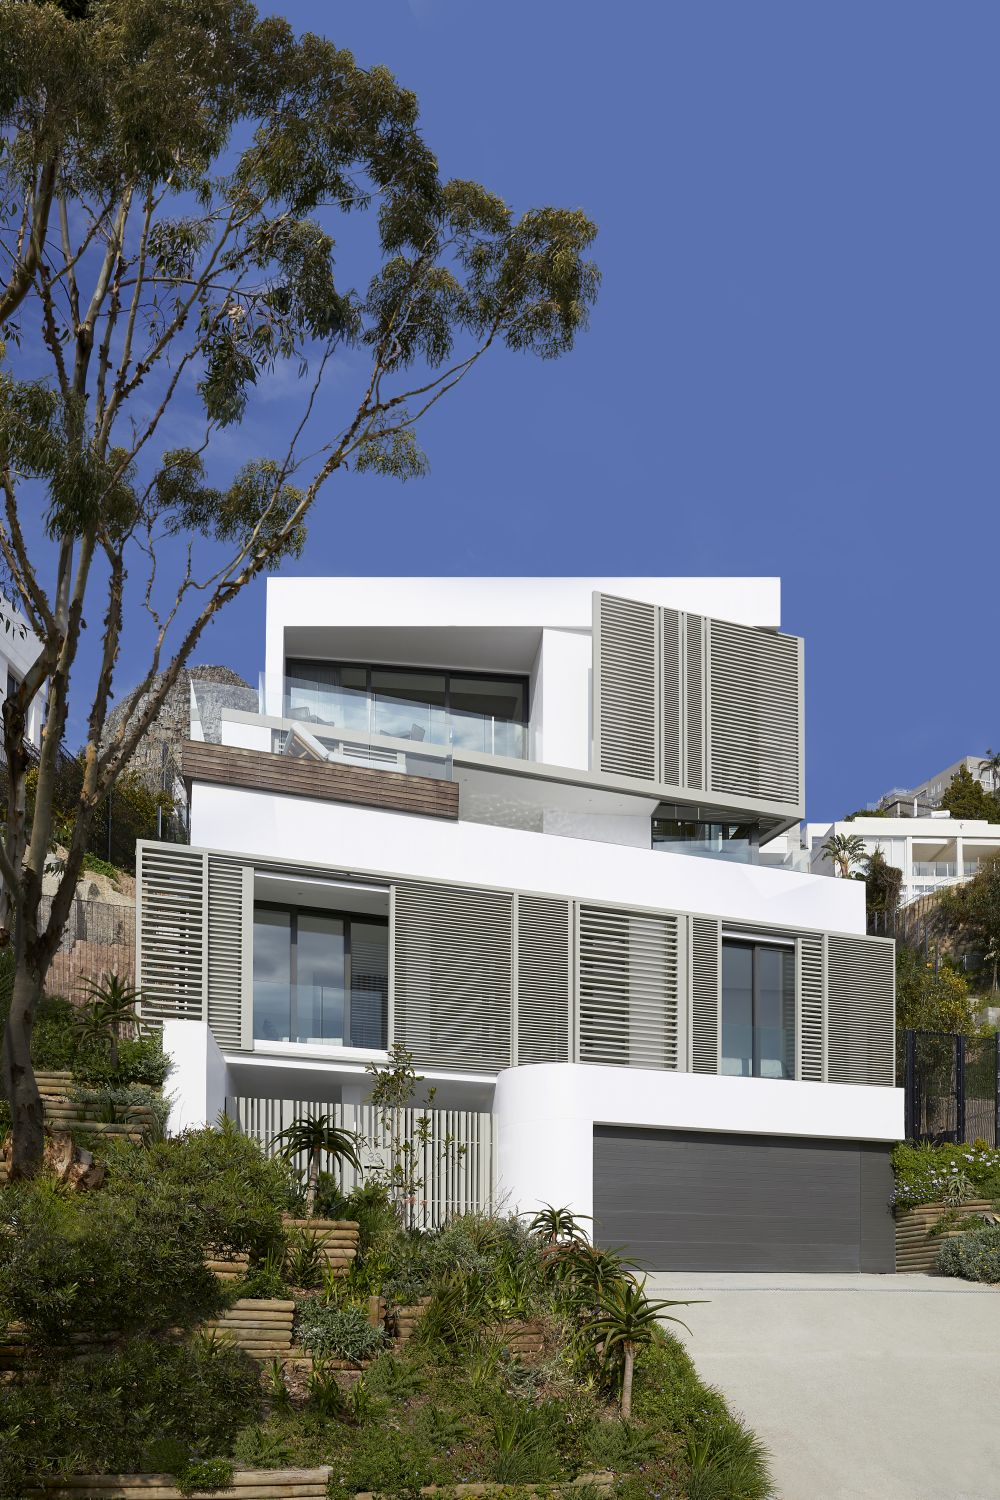 The City Heights project is a contemporary terraced home completed in 2018